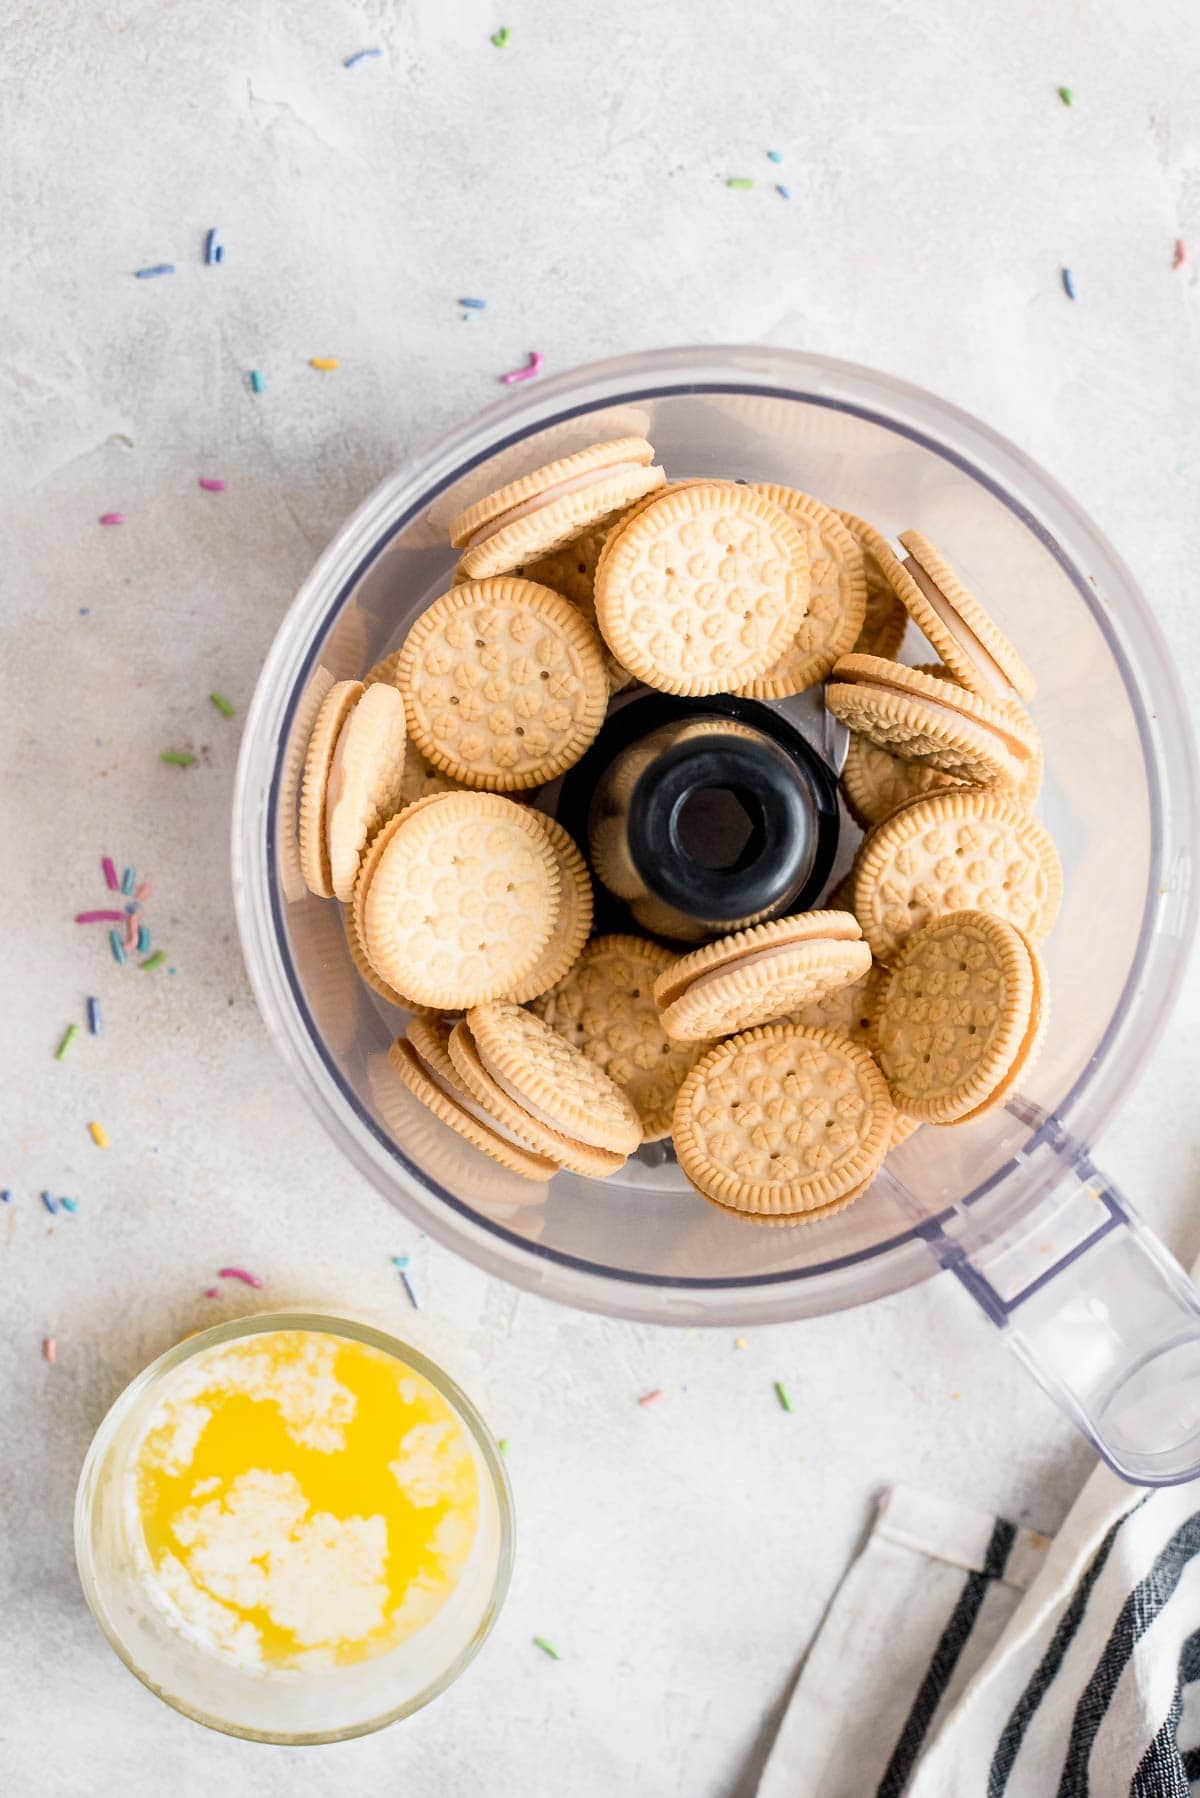 Oreos in food processor next to small glass bowl of melted butter